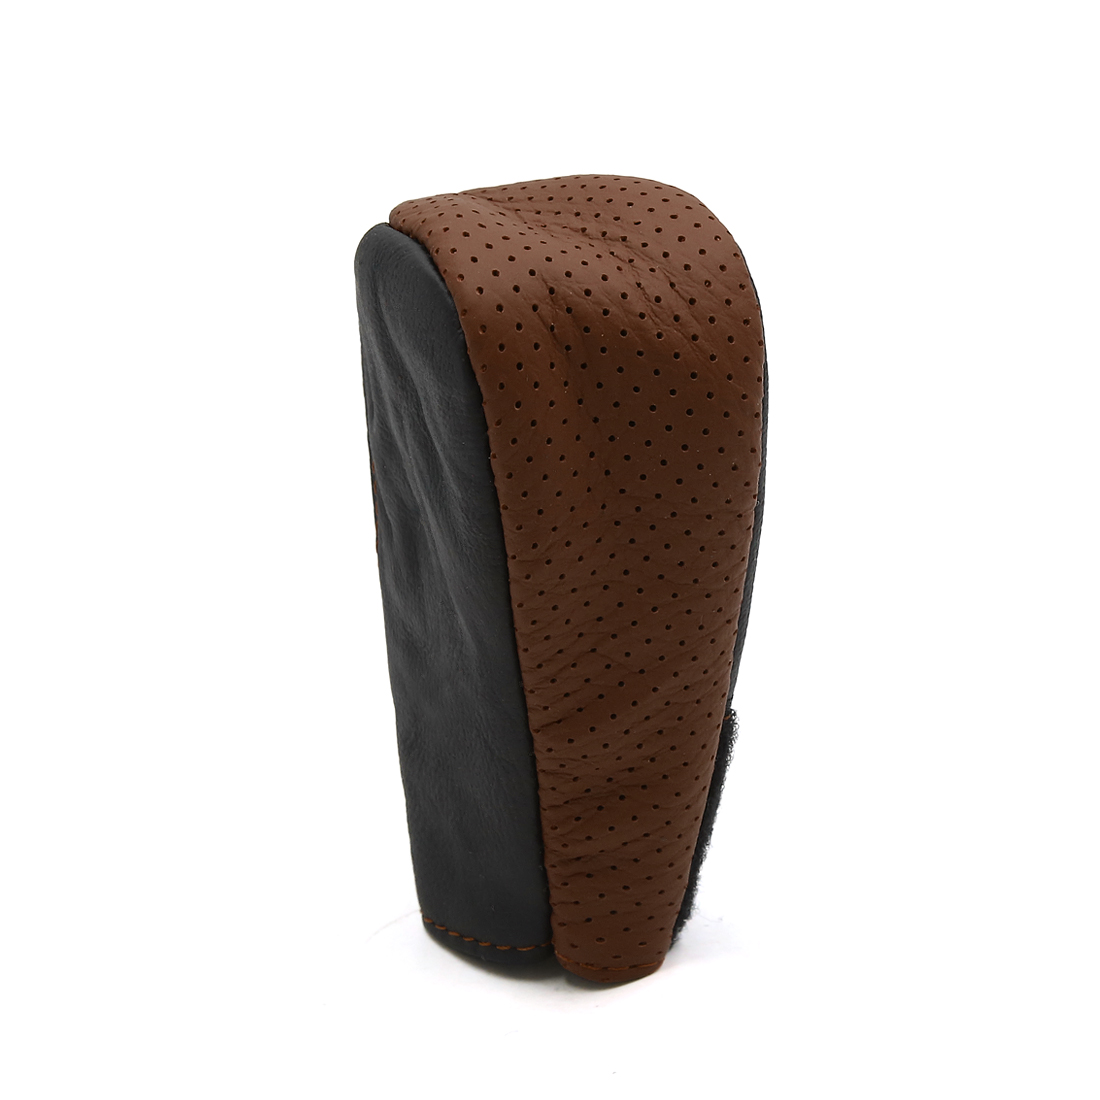 Faux Leather Hoop Loop Closure Car Gear Shift Knob Shifter Cover Protector Brown